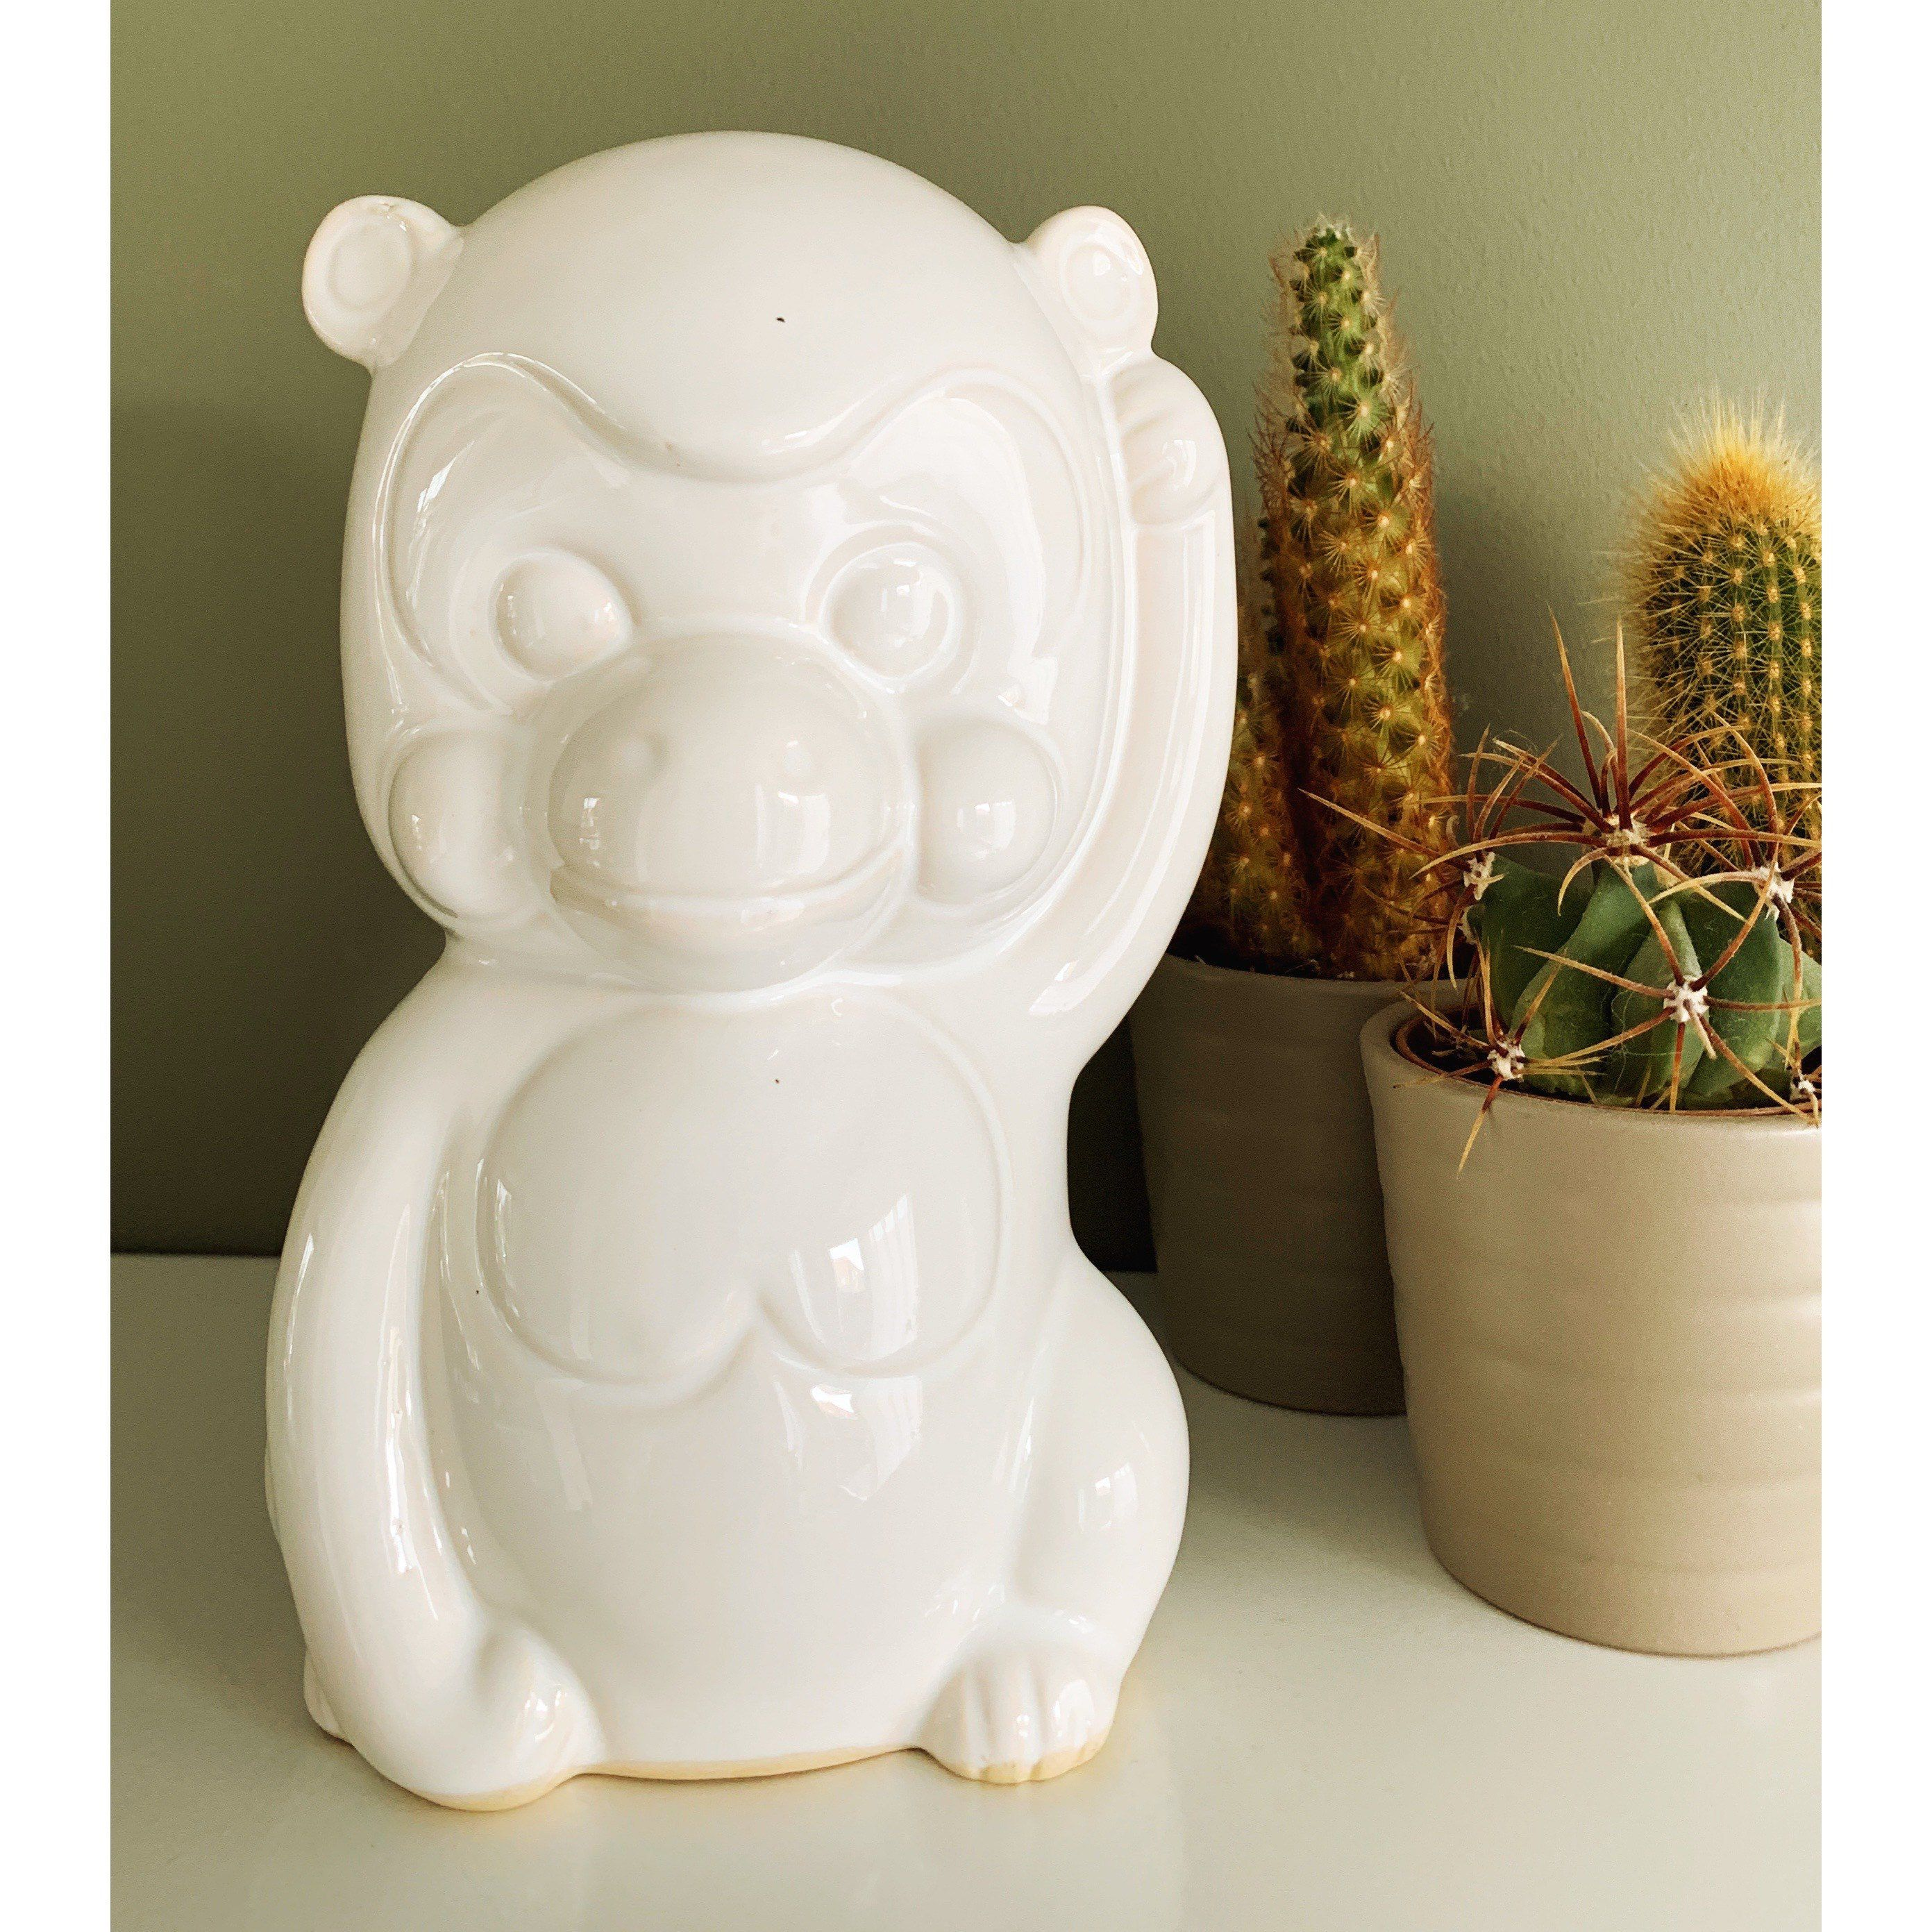 Vintage White Ceramic Monkey Figurine #woonaccessoires